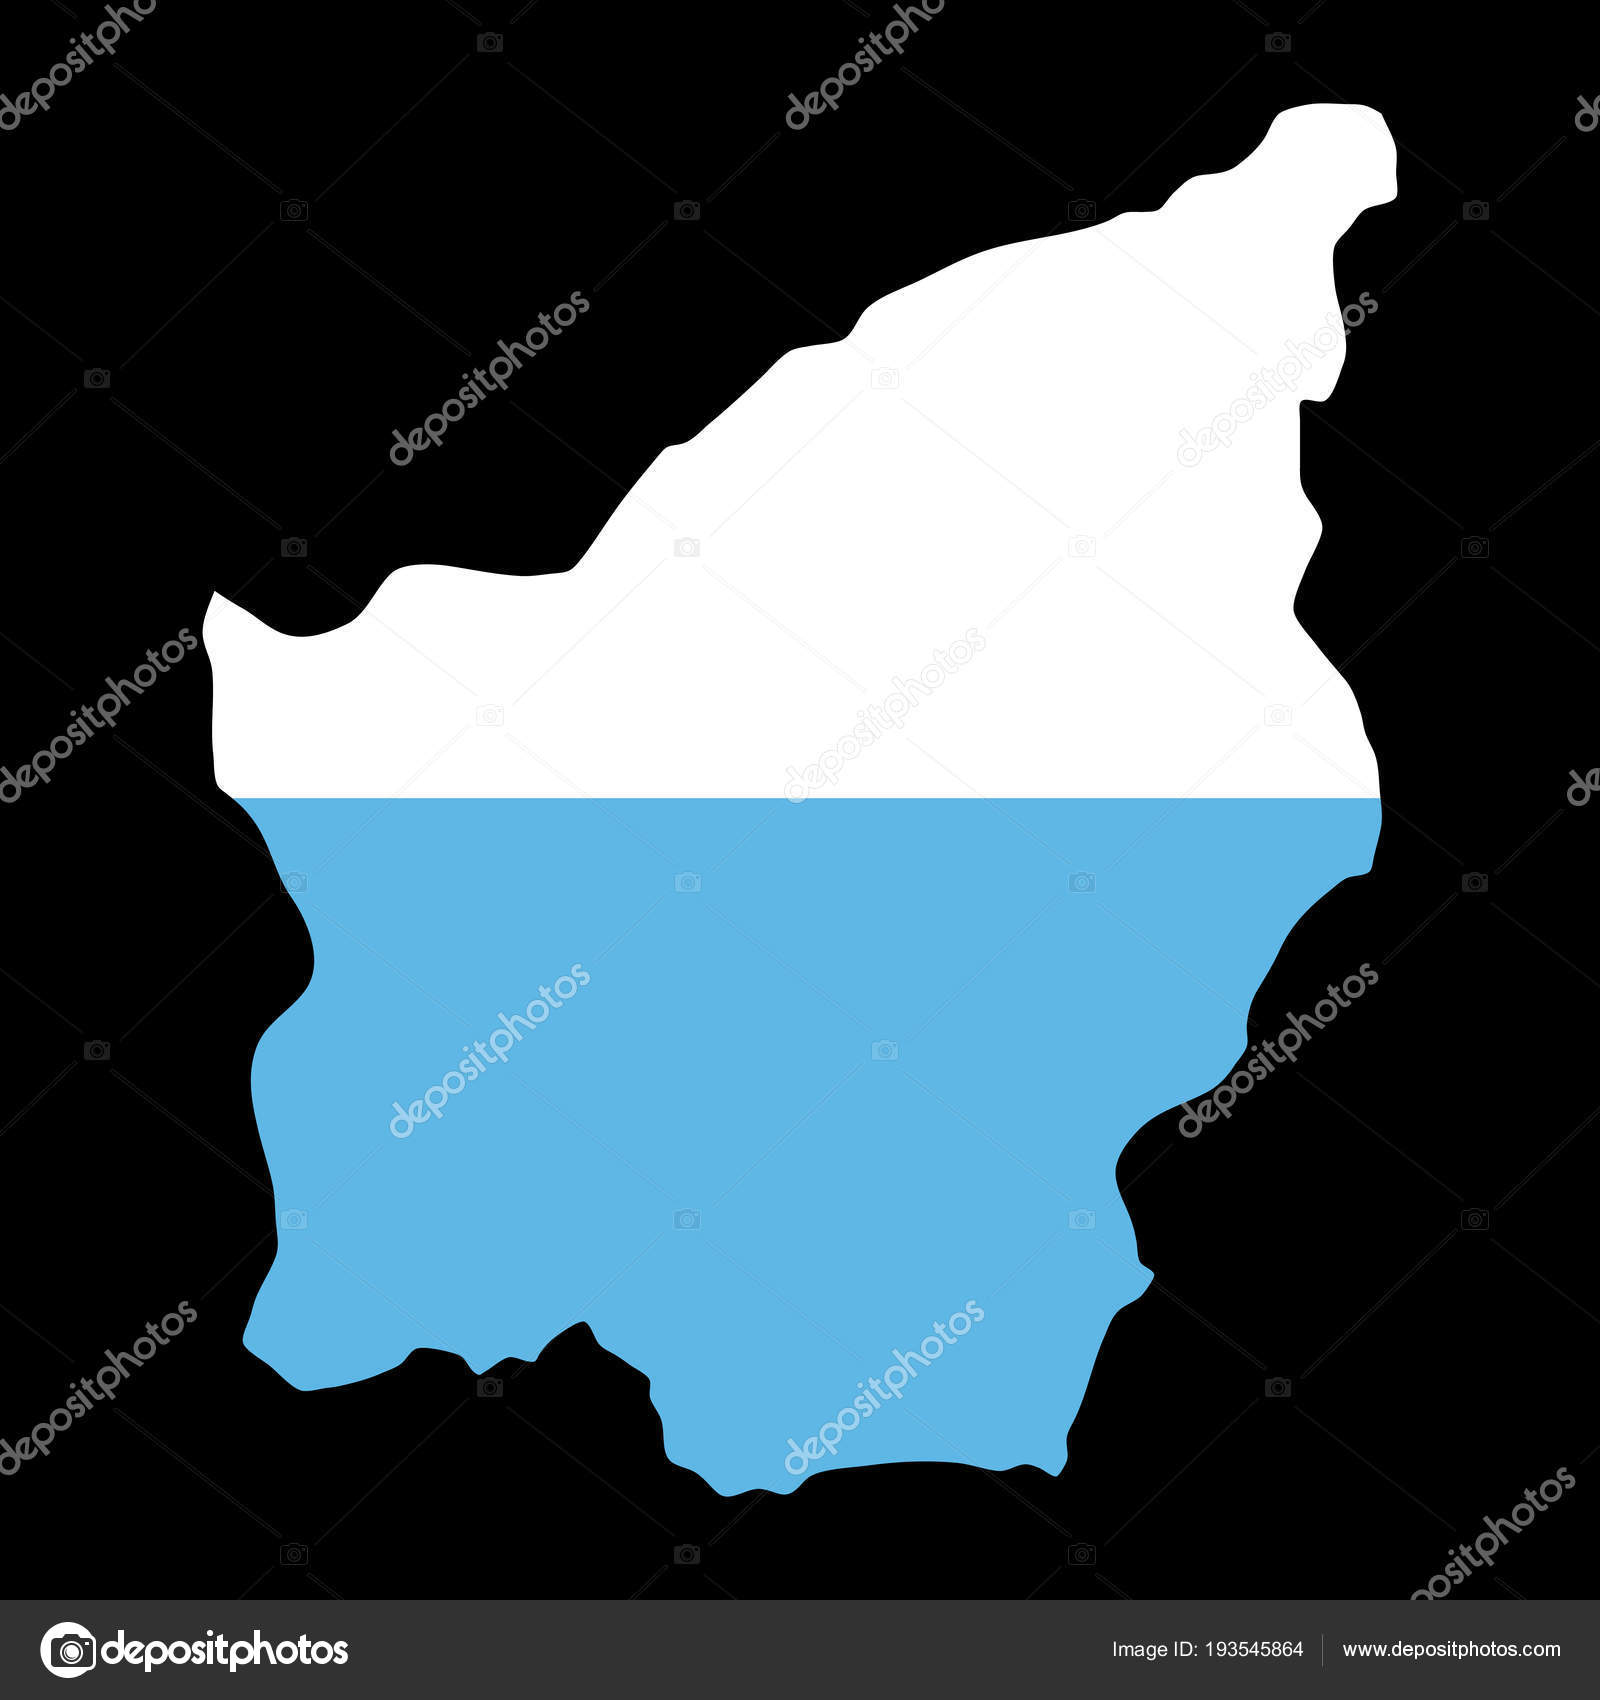 silhouette country borders map of San Marino on national flag